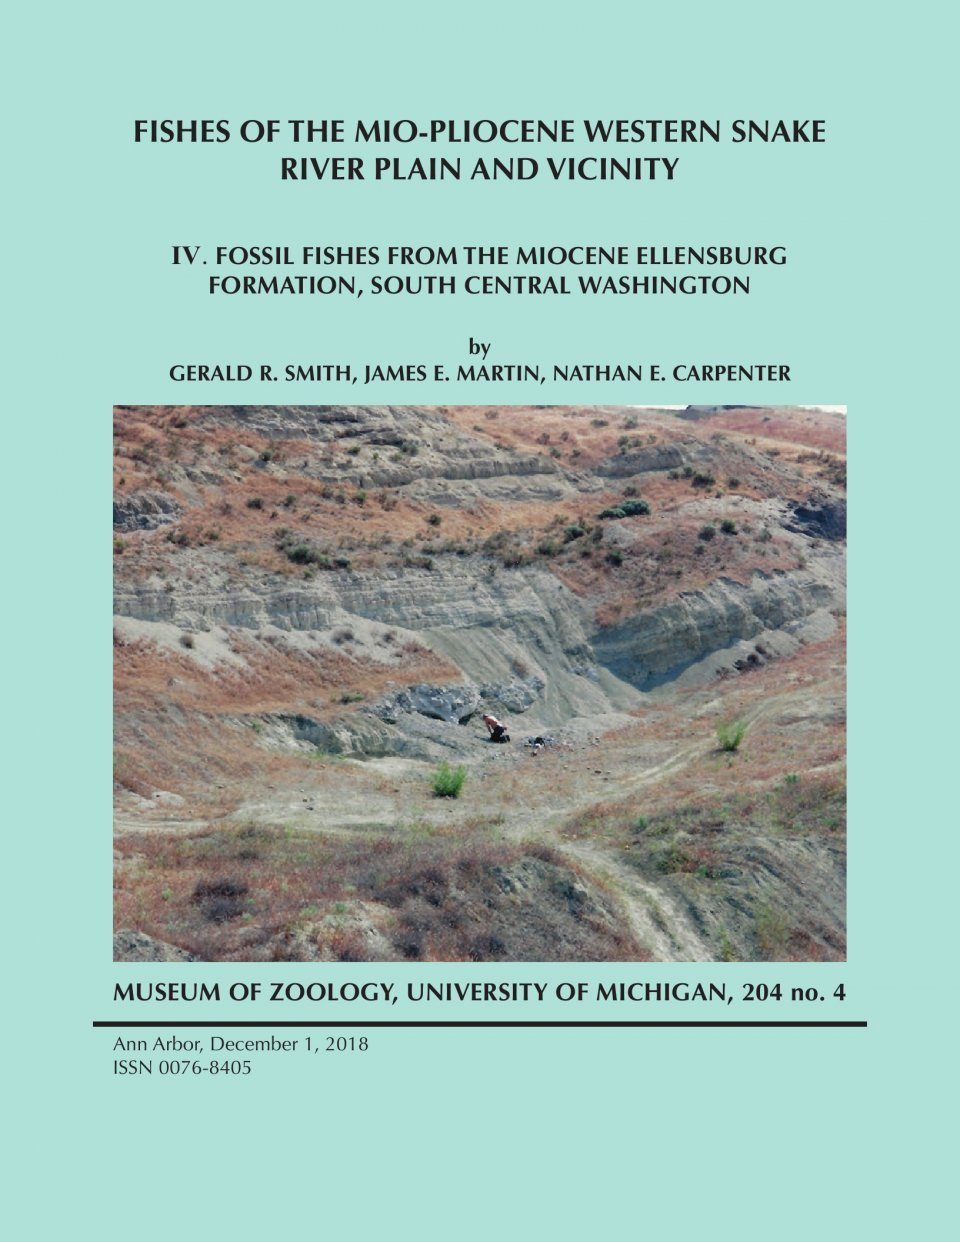 Fishes of the Mio-Pliocene Western Snake River Plain and Vicinity, Volume 4